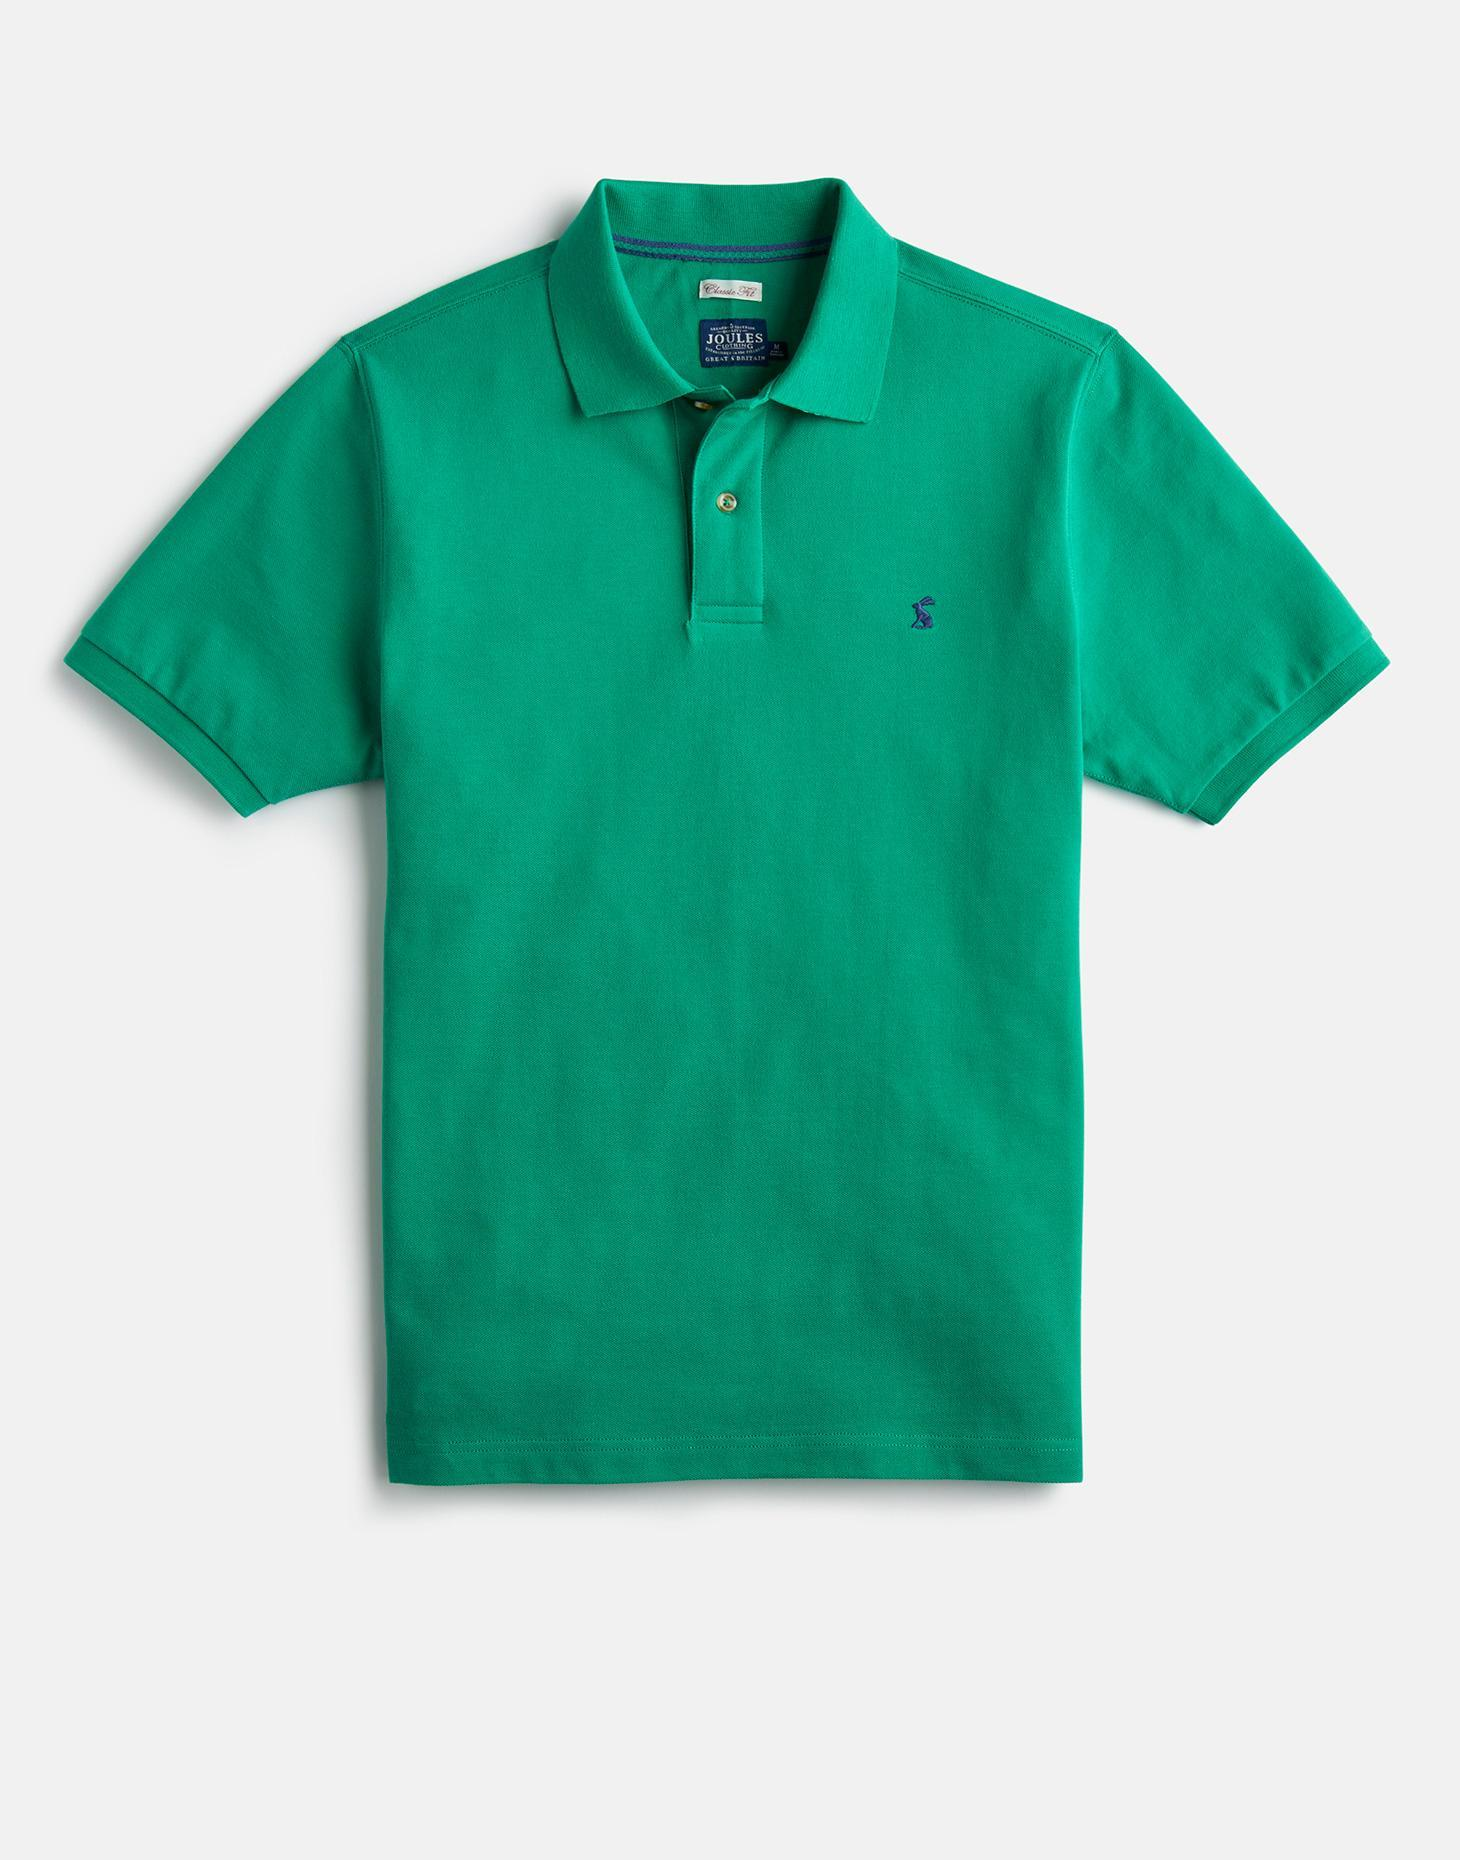 Joules Green WOODY CLASSIC Classic Fit Polo Shirt